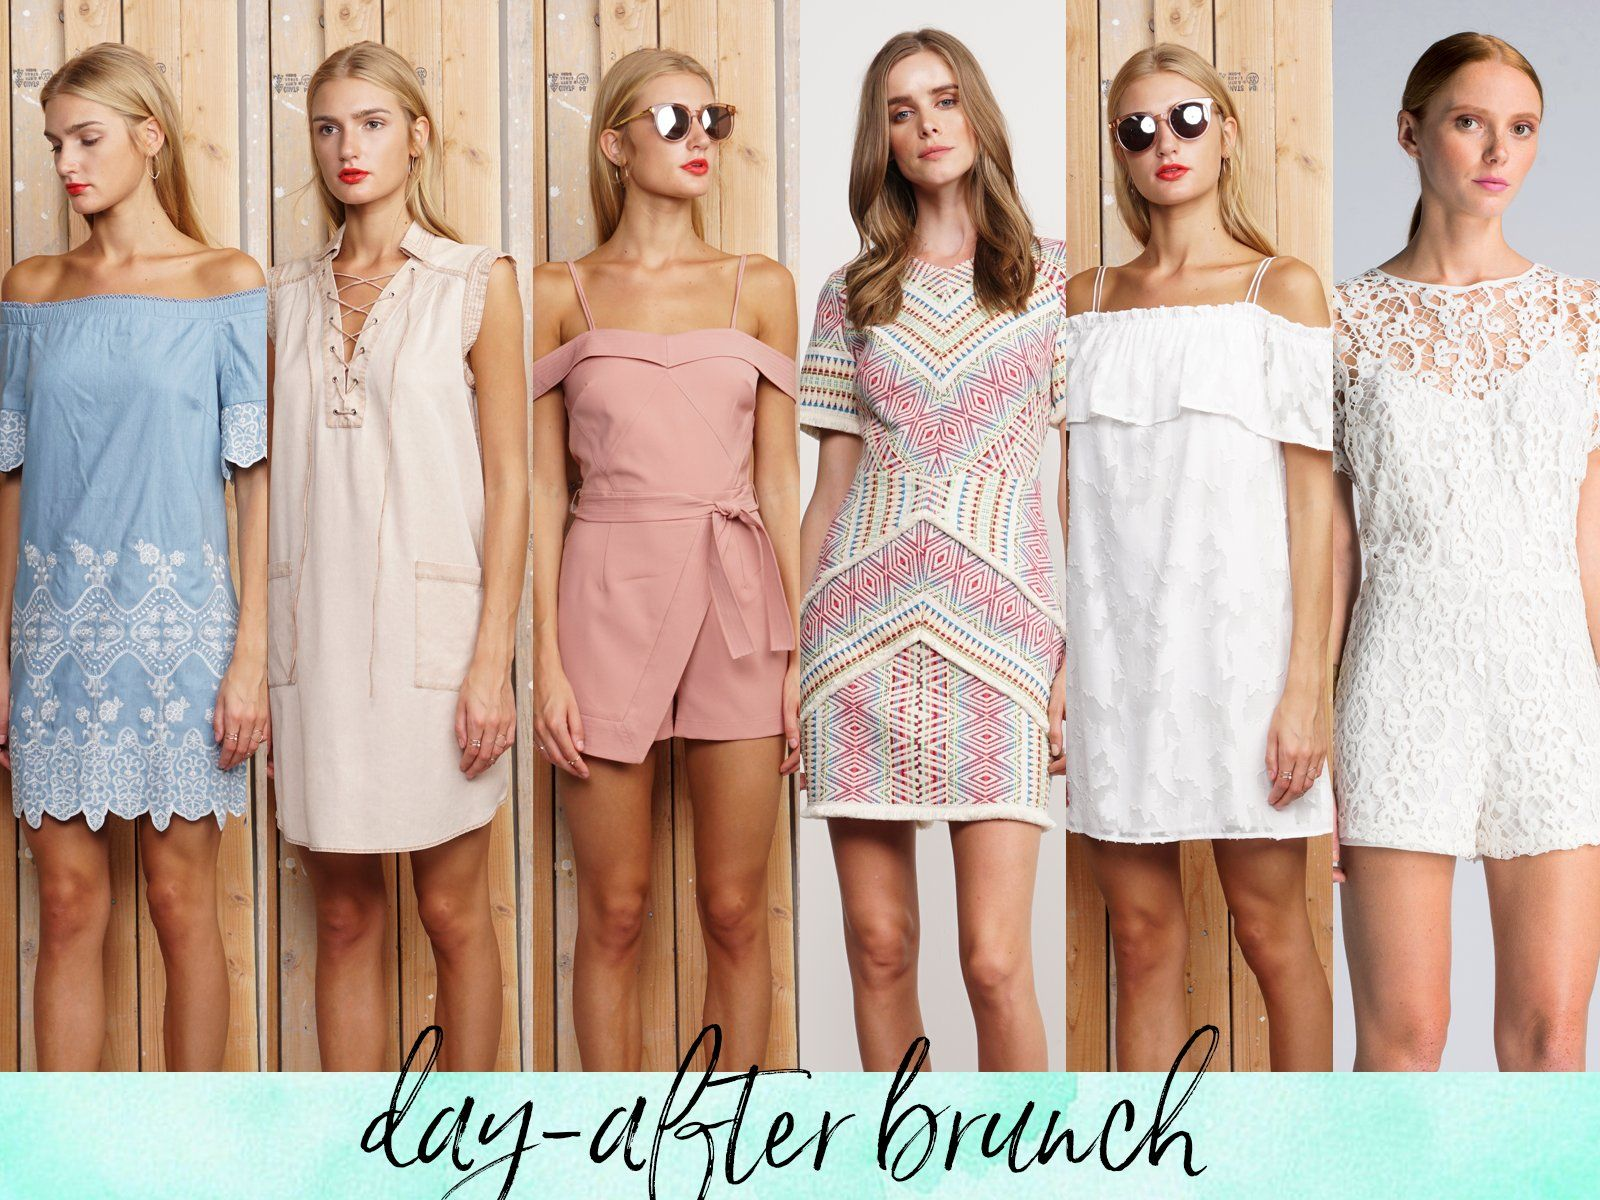 Wedding Brunch Dresses For Guest Kick Back Relax And P The Pancakes A